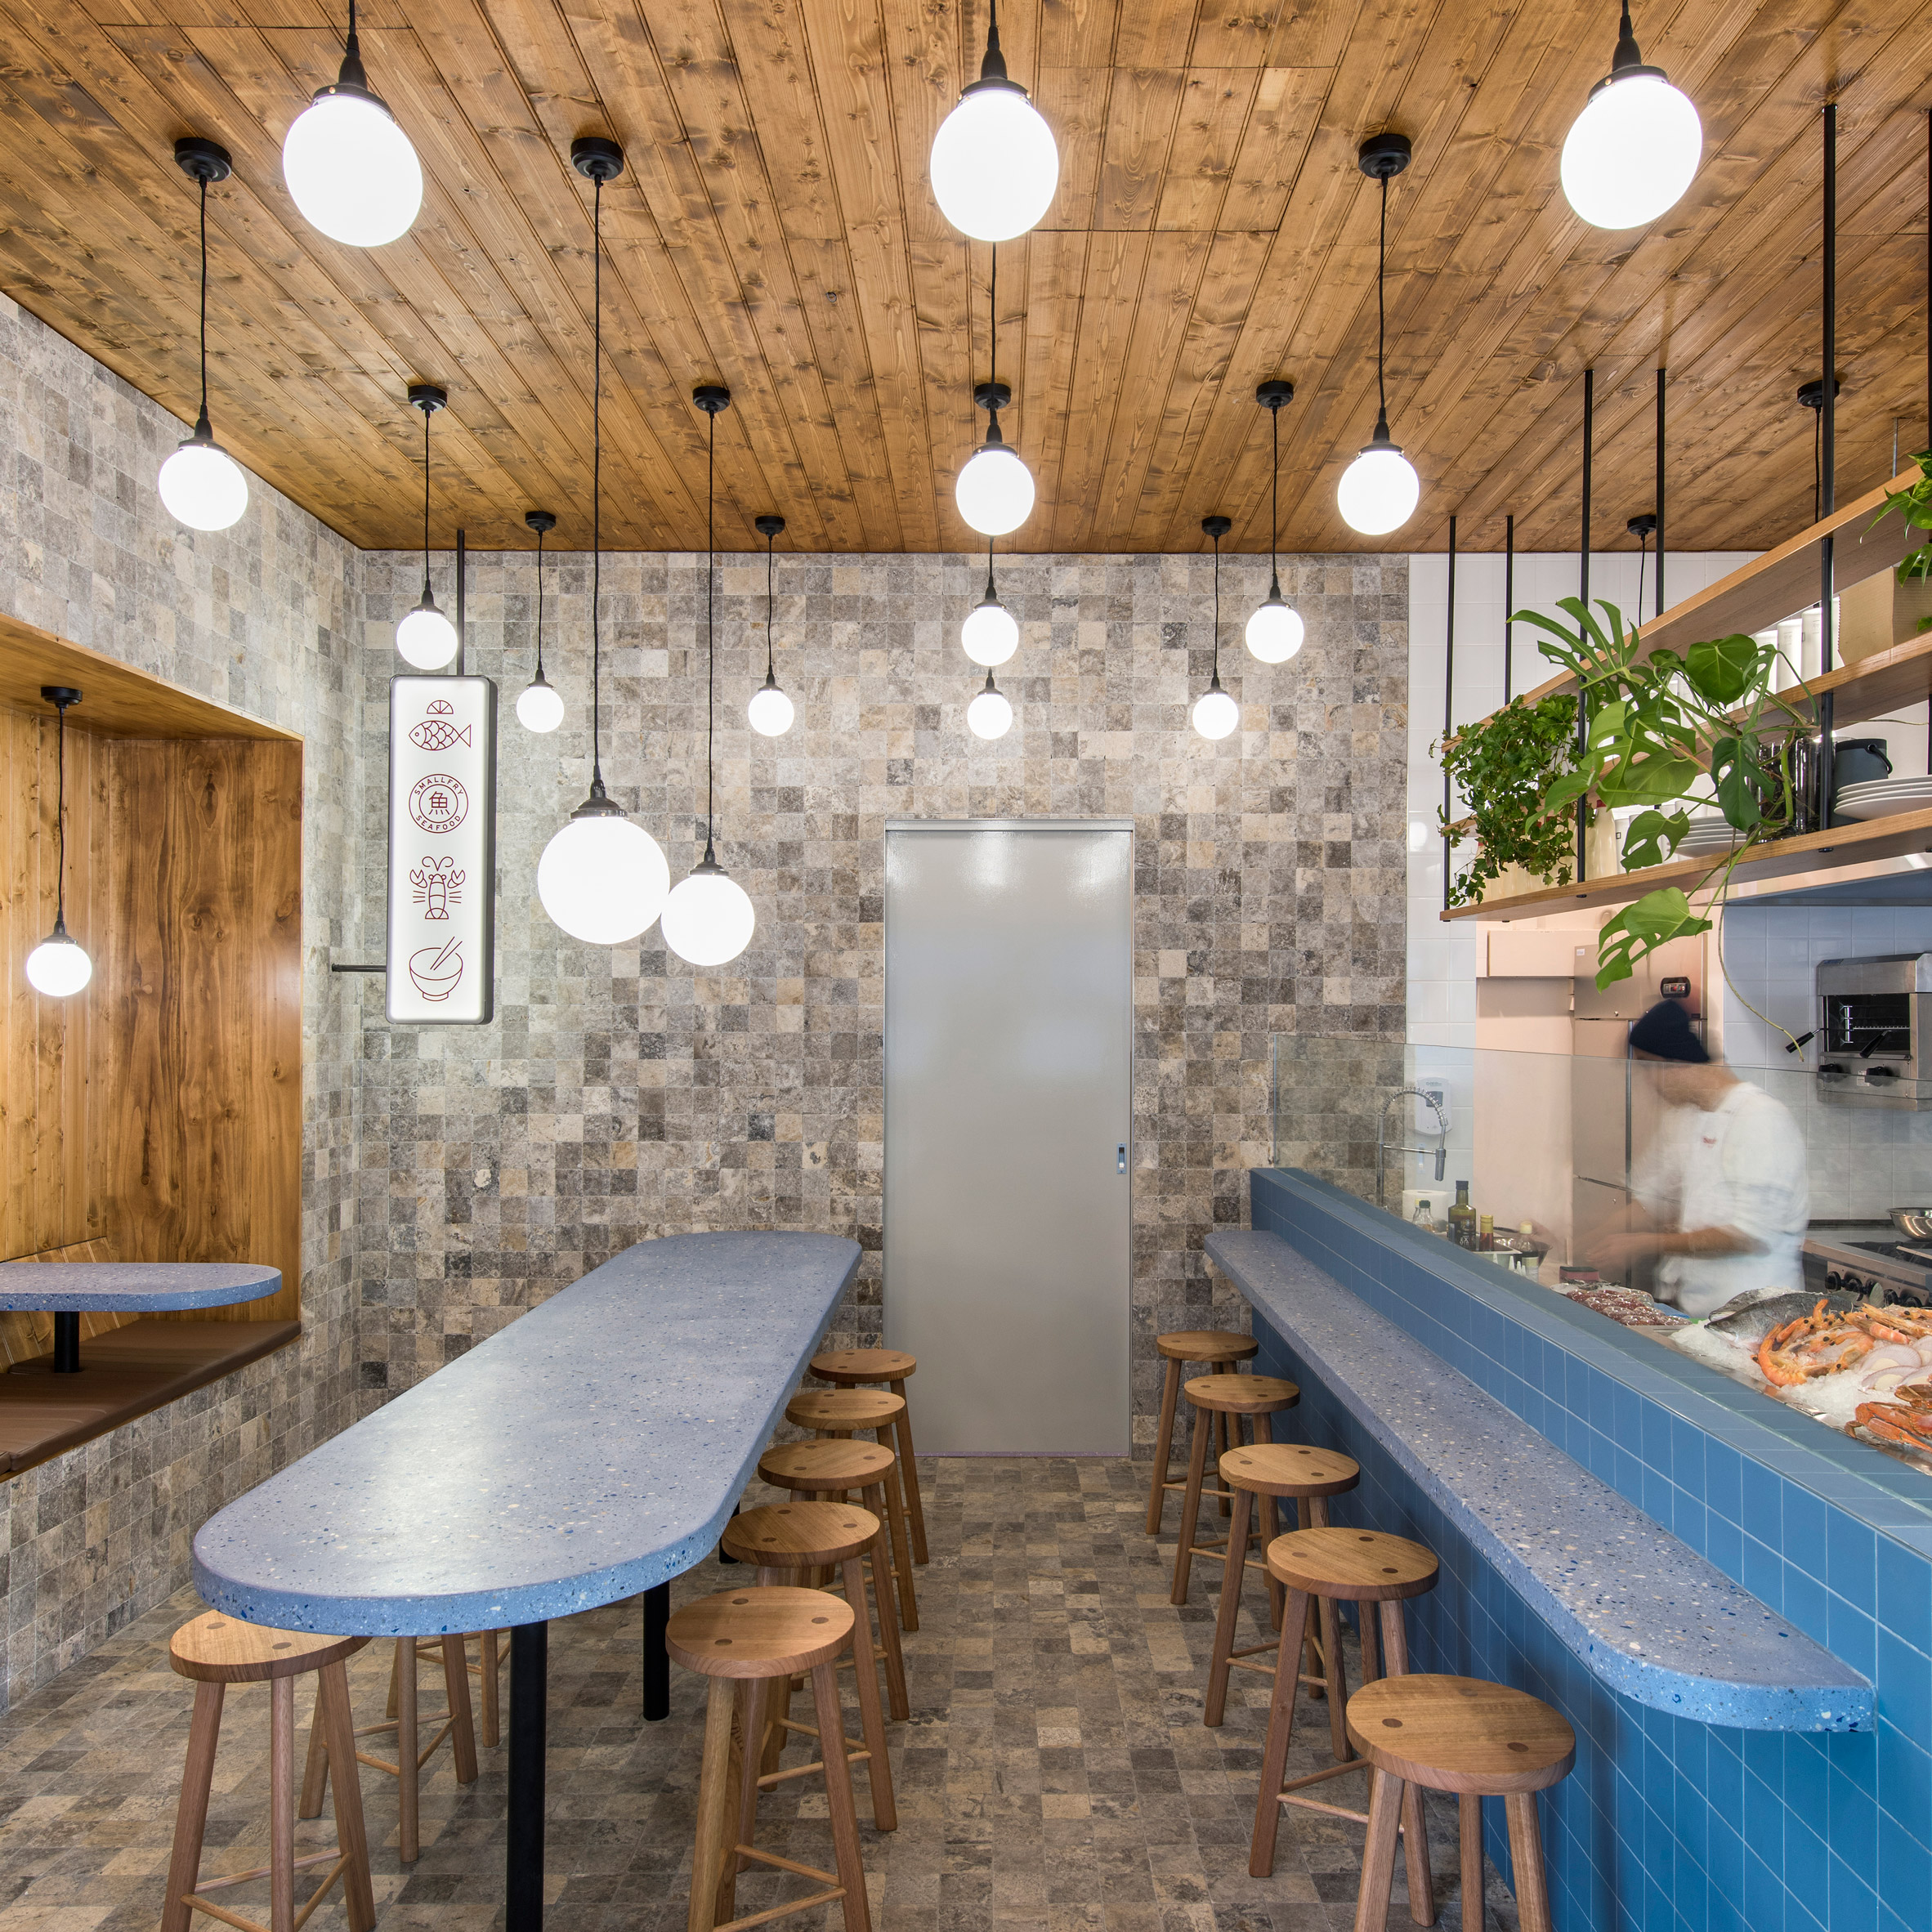 Smallfry Seafood restaurant by Sans-Arc Studio